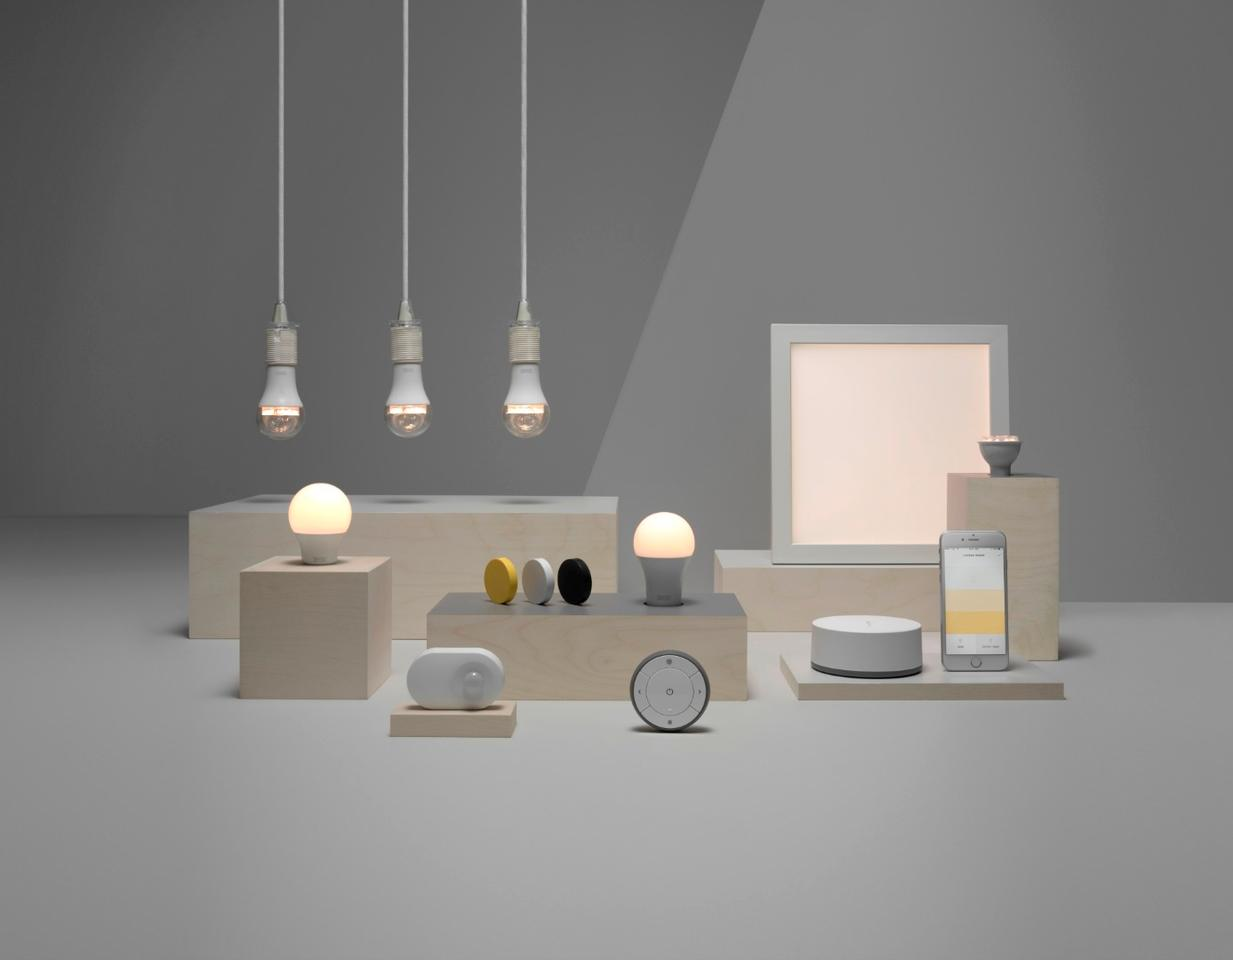 Ikea has continually taken proactive steps towards the future of the smart home